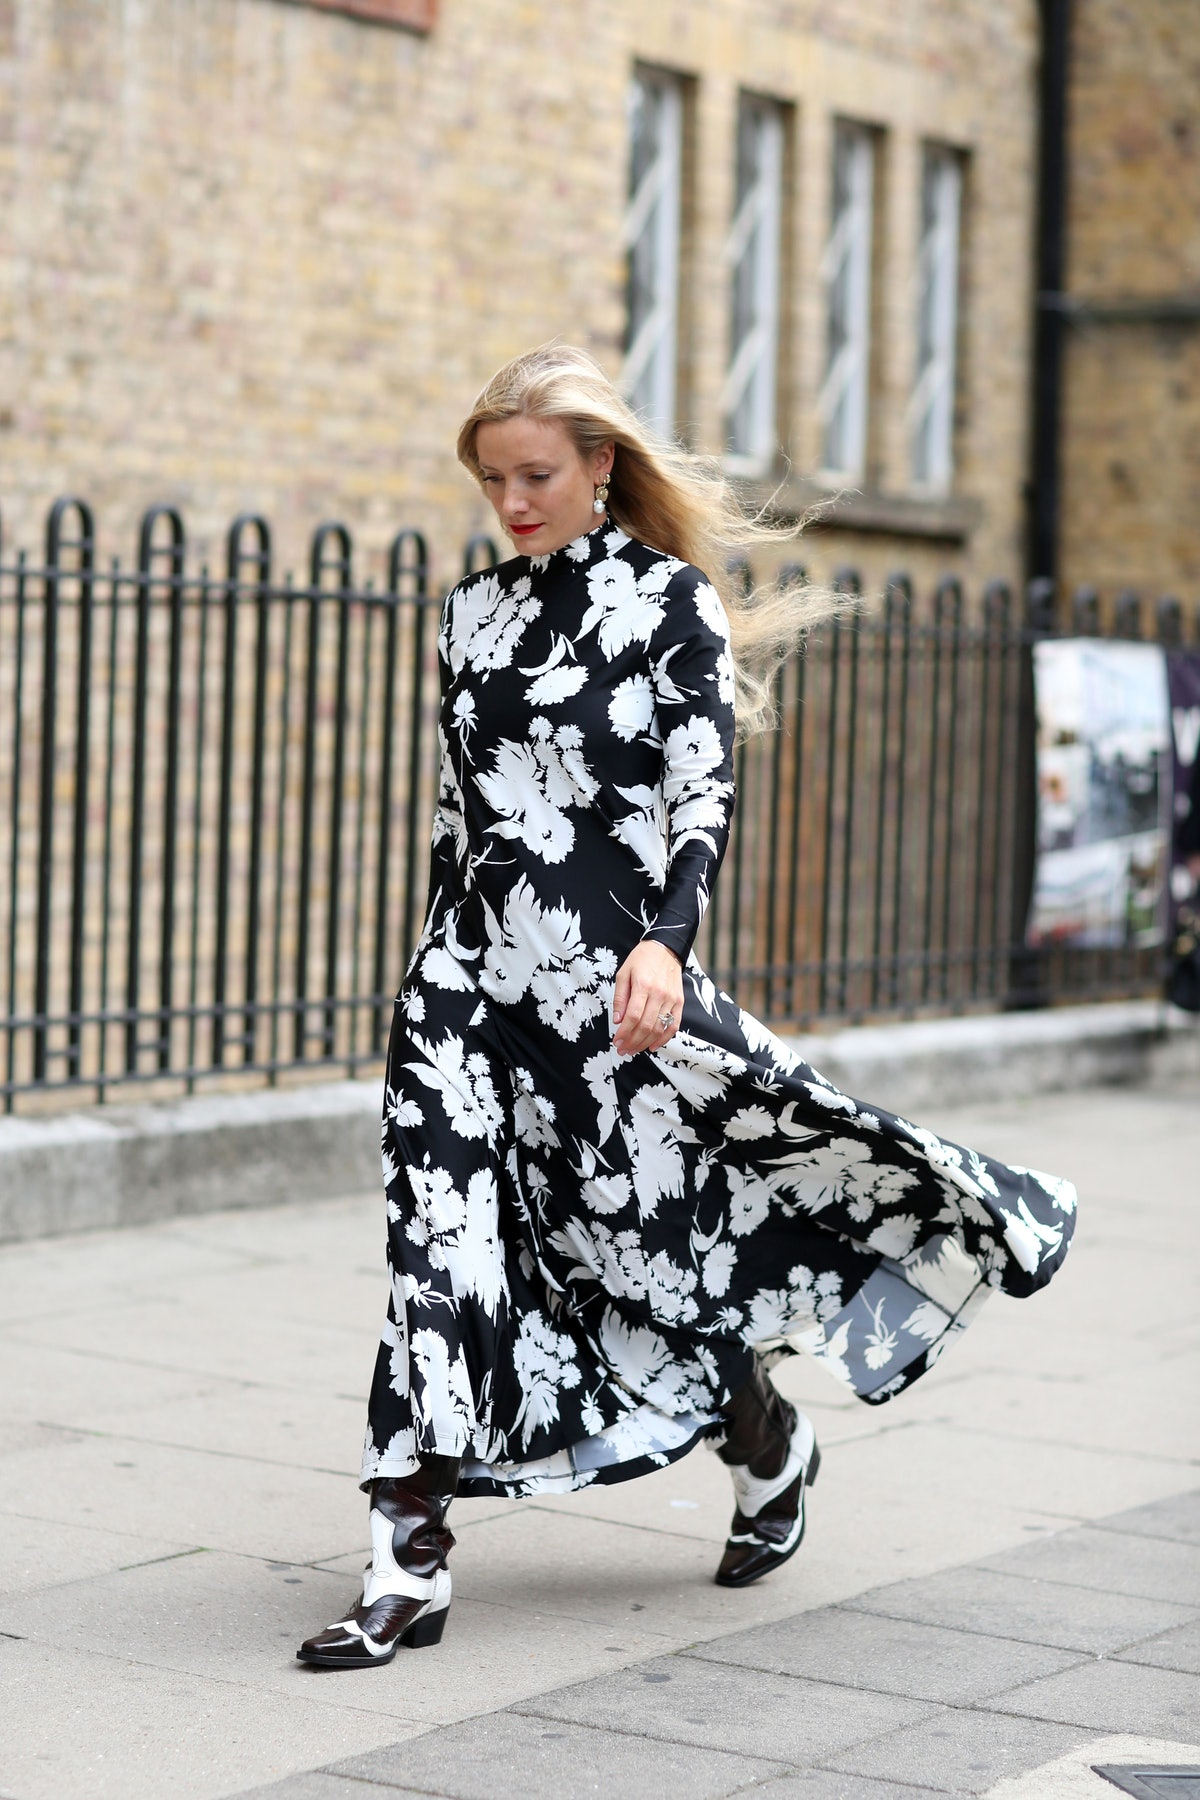 How To Wear Boots With Dresses, Even When It's Truly Frigid Outside